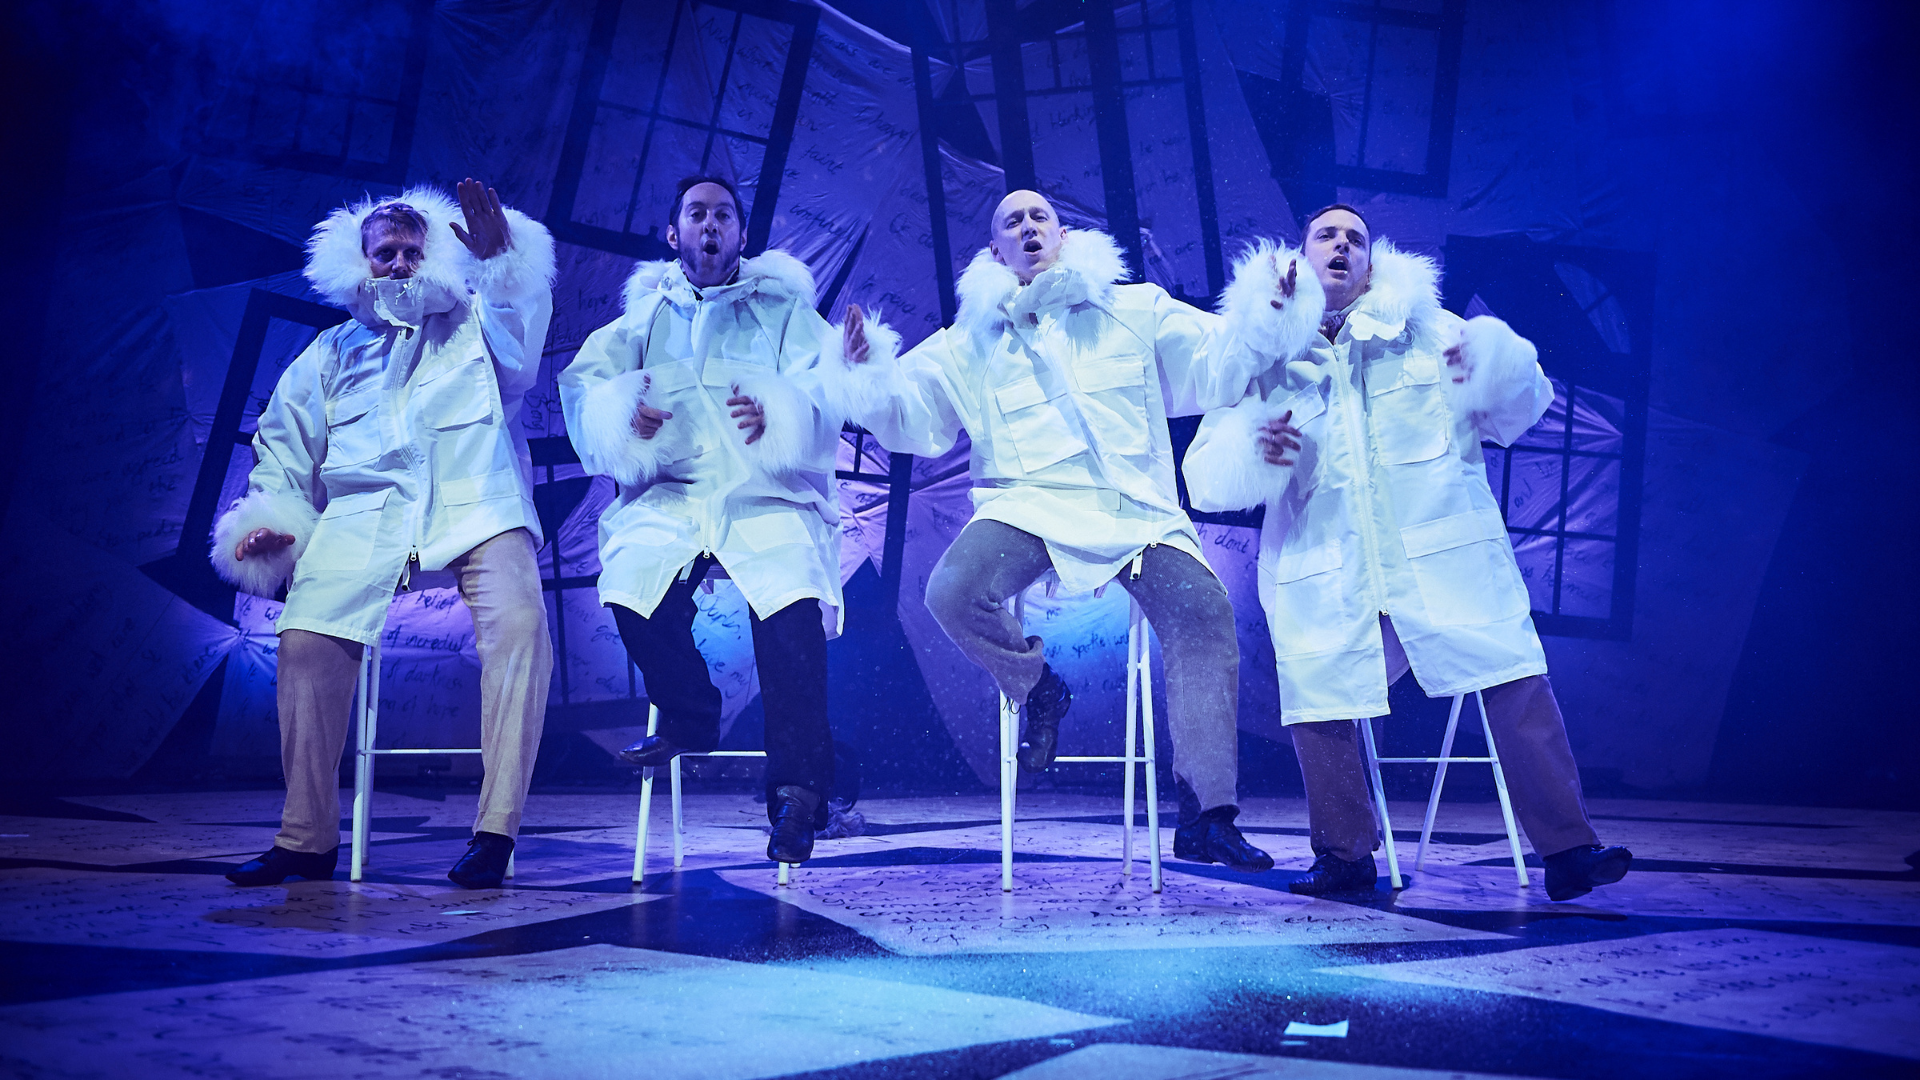 A Christmas Carol production shot: 4 characters sat on stool, wearing large white winter coats